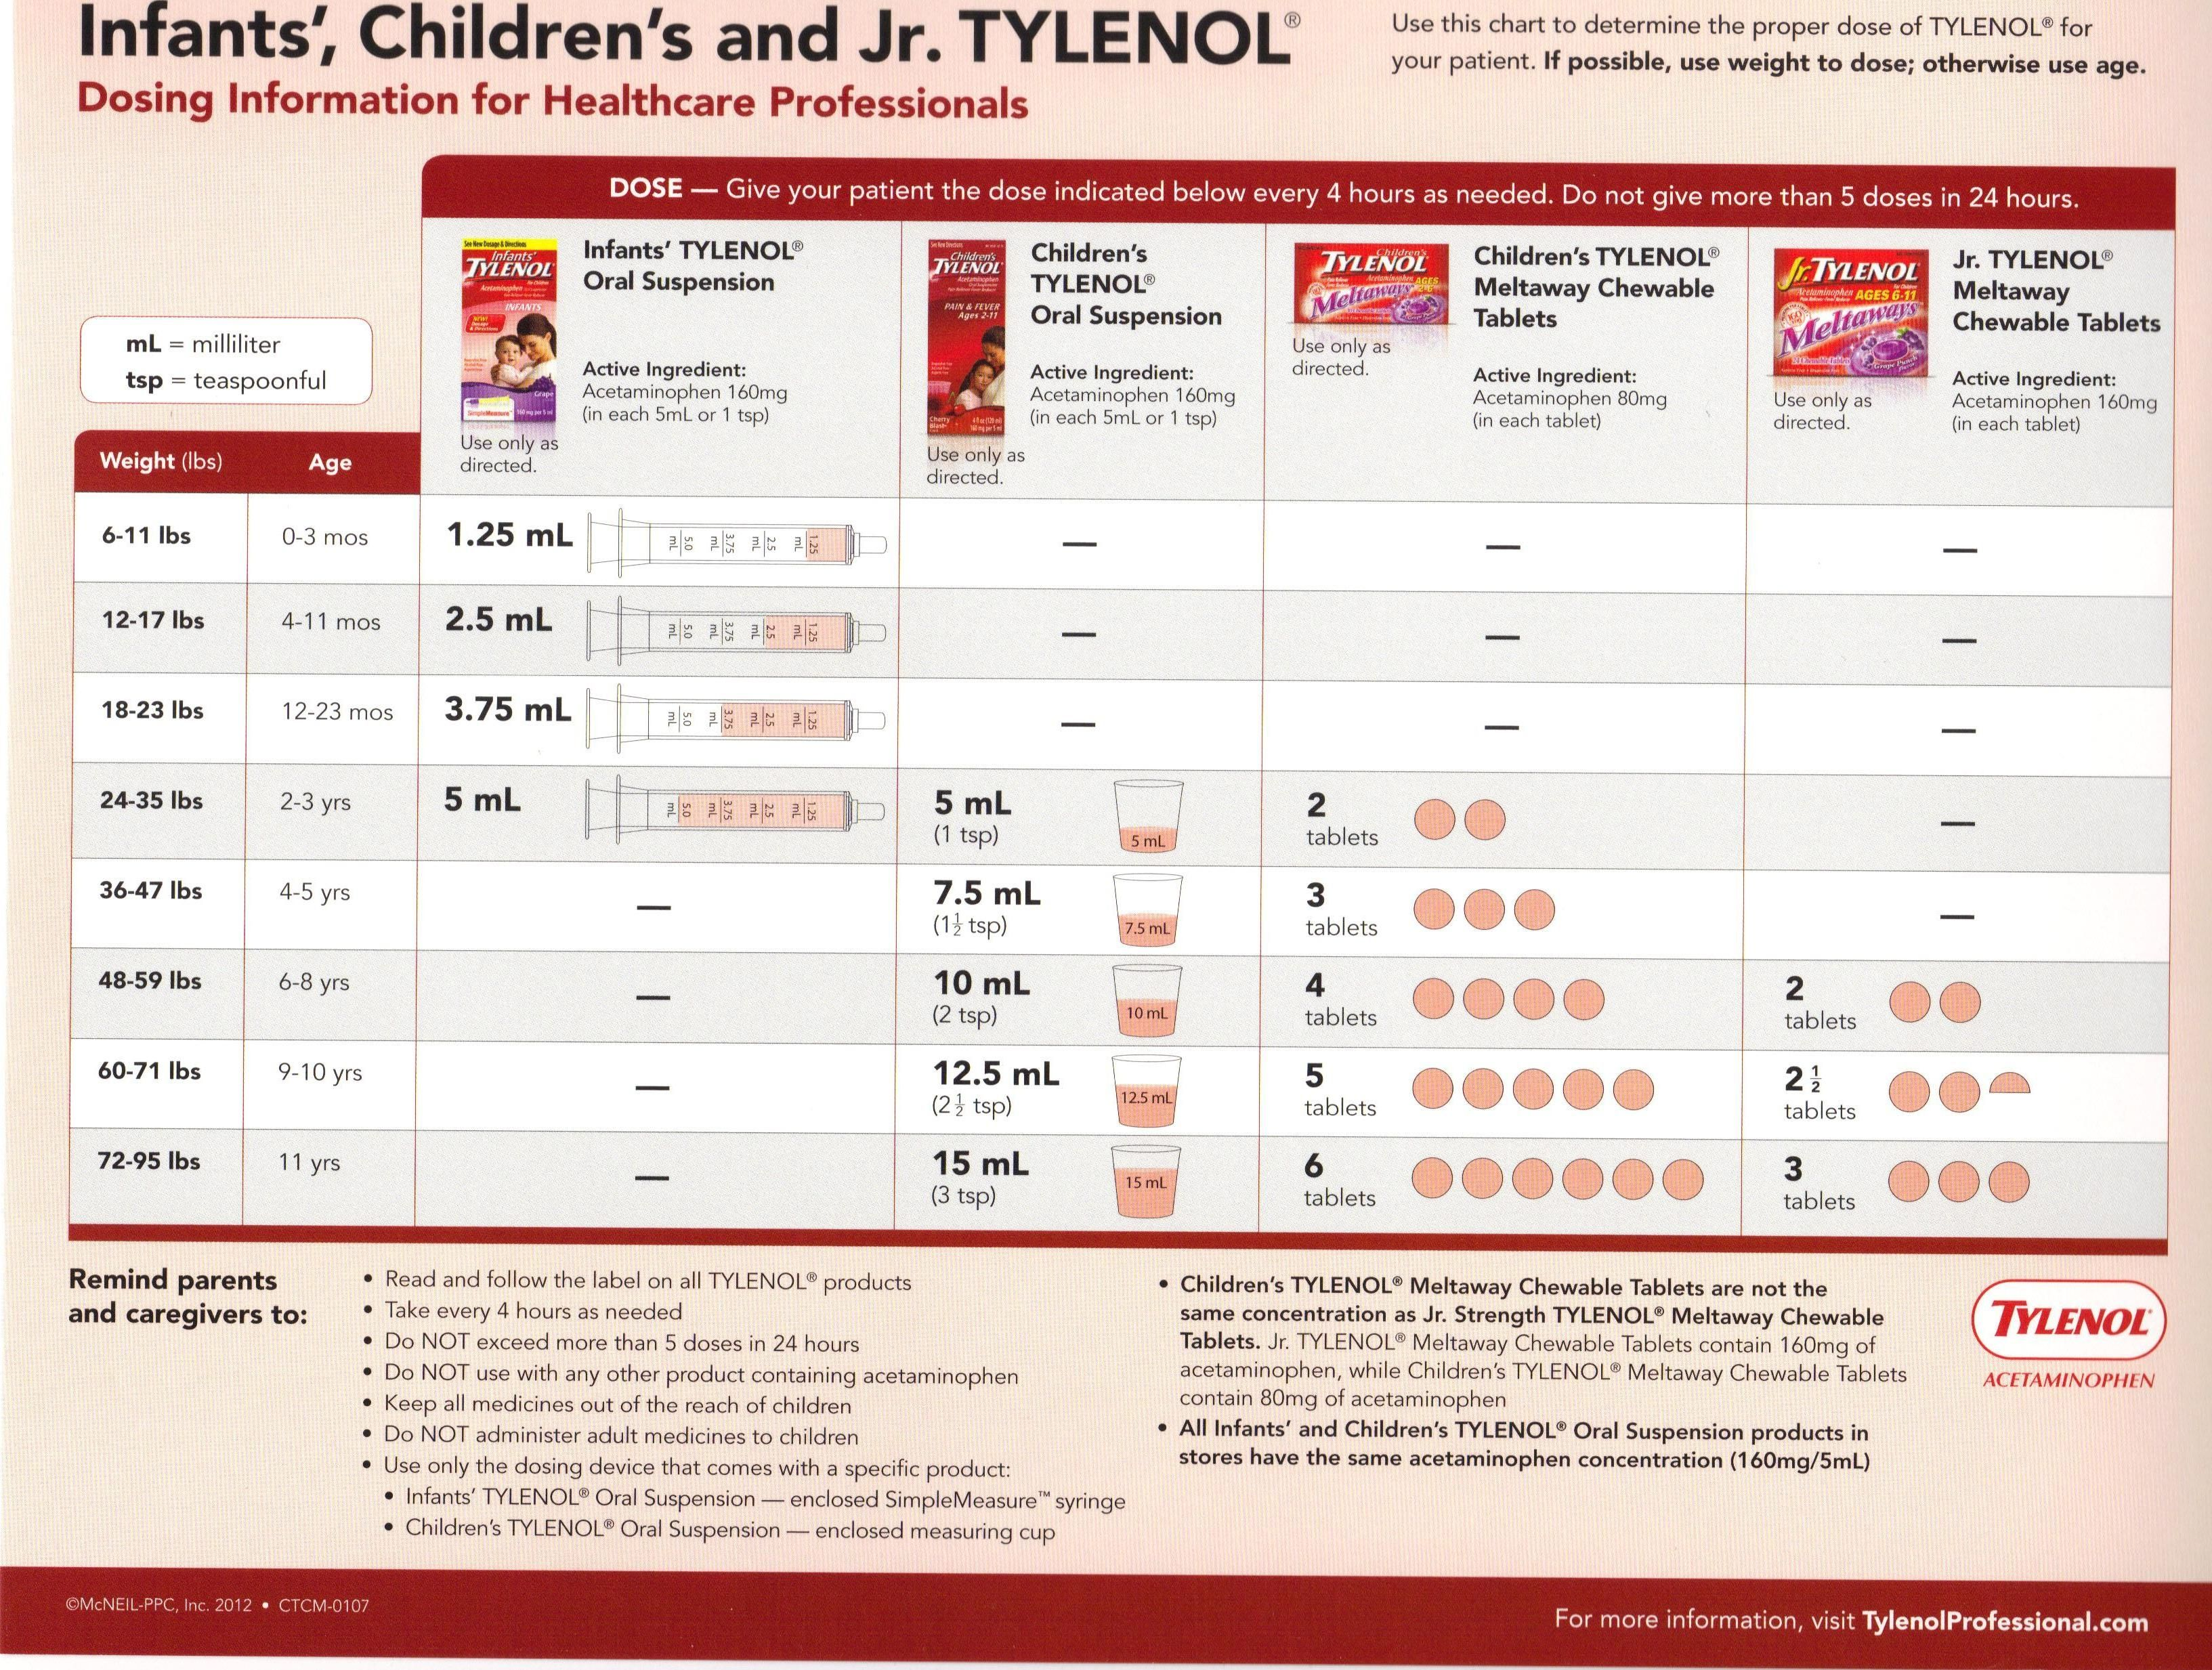 Infant Tylenol Dosing Chart Use This To Determine The Proper Dose Of Acetaminophen